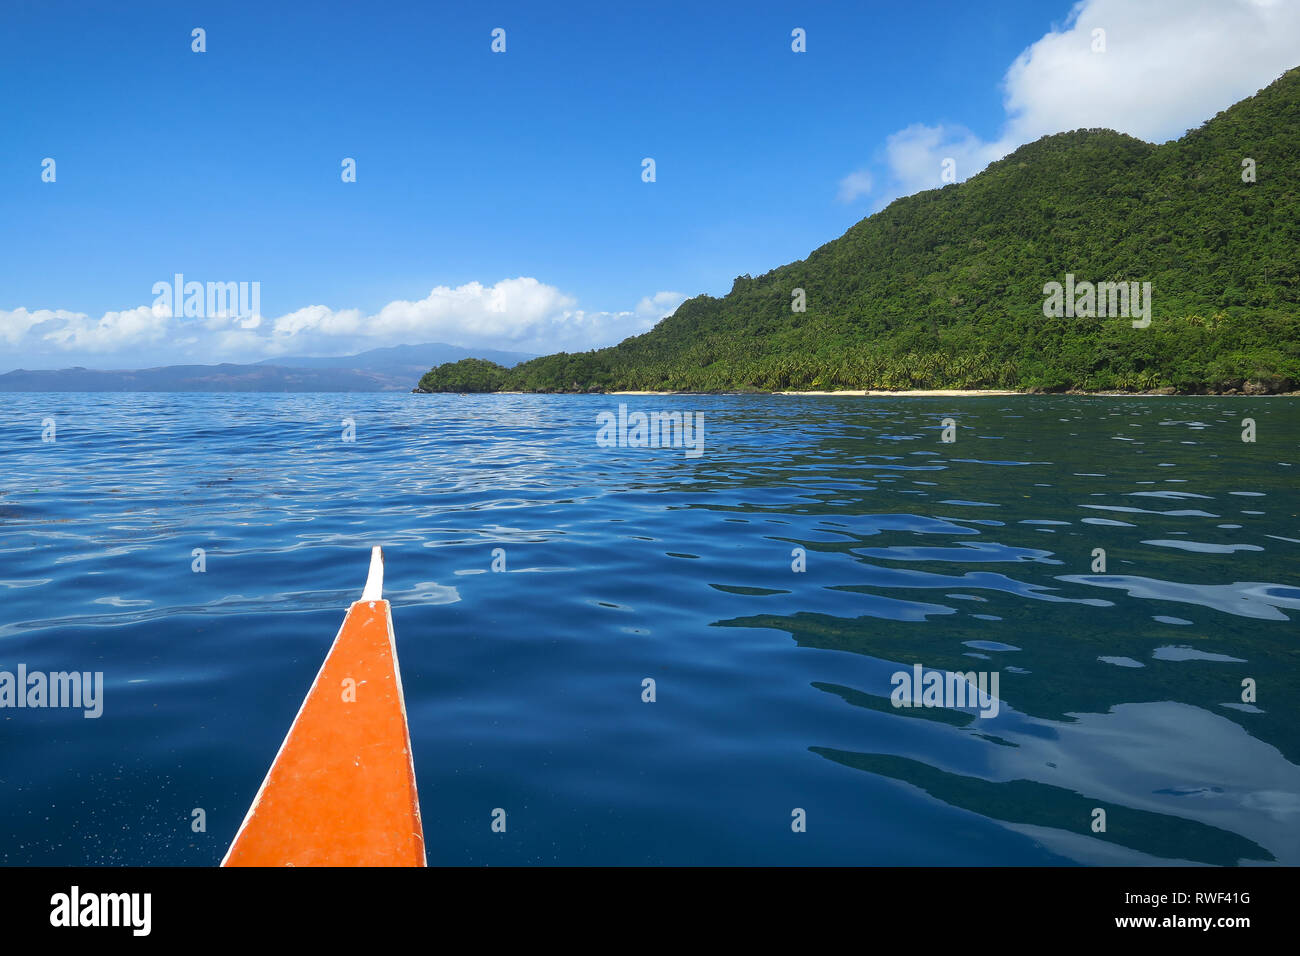 Island Hopping Boat Trip, With Tropical Island and Sea - Siargao, Philippines - Stock Image